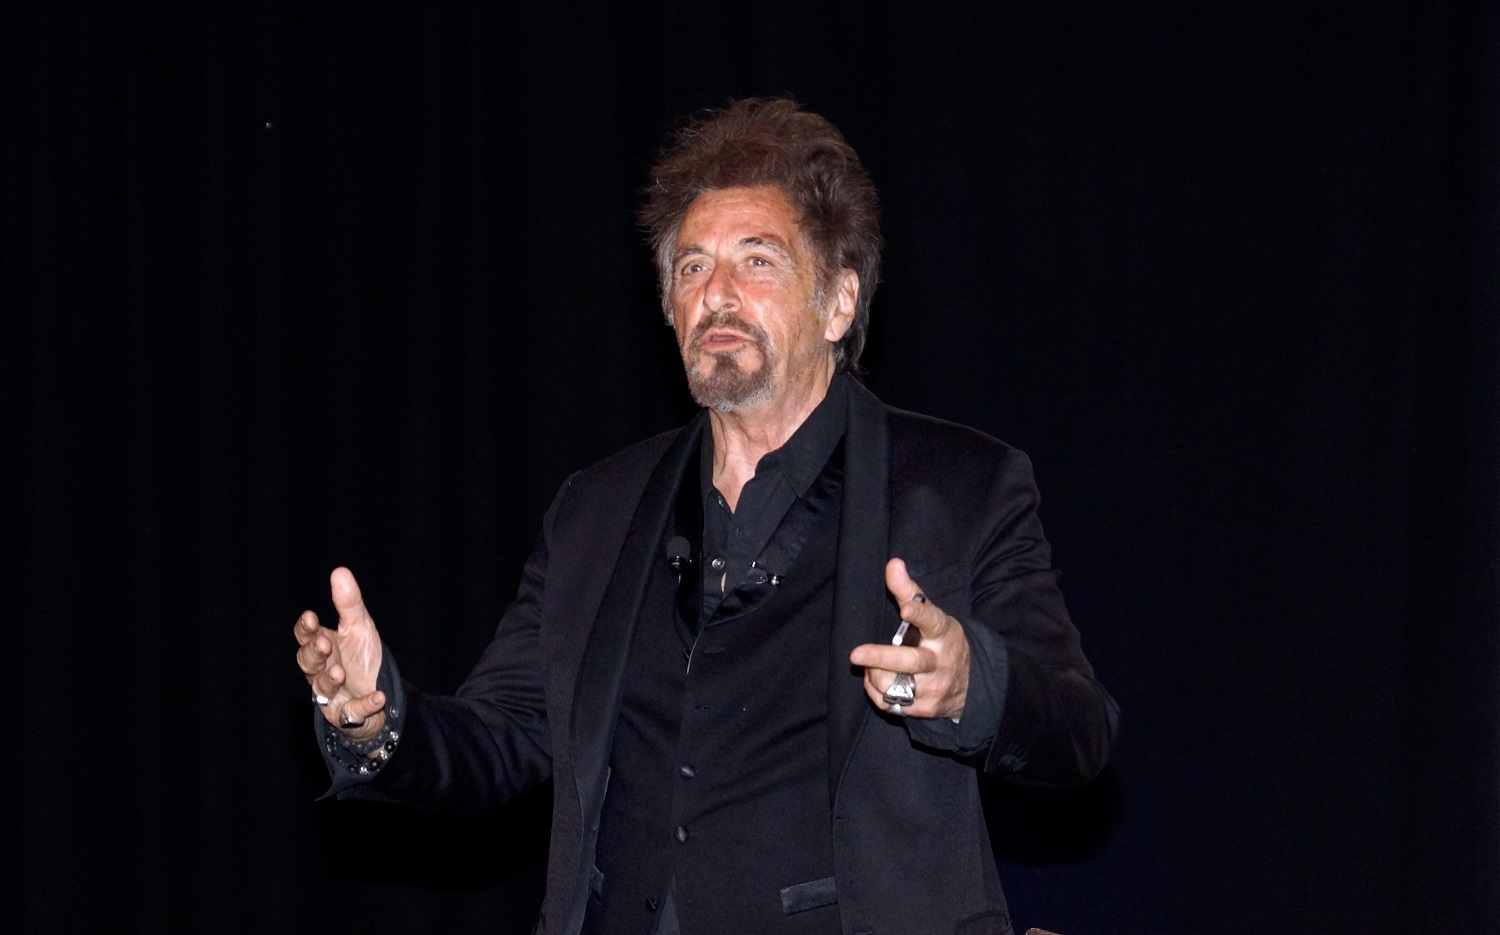 Al Pacino Headlines JFS Event in Denver